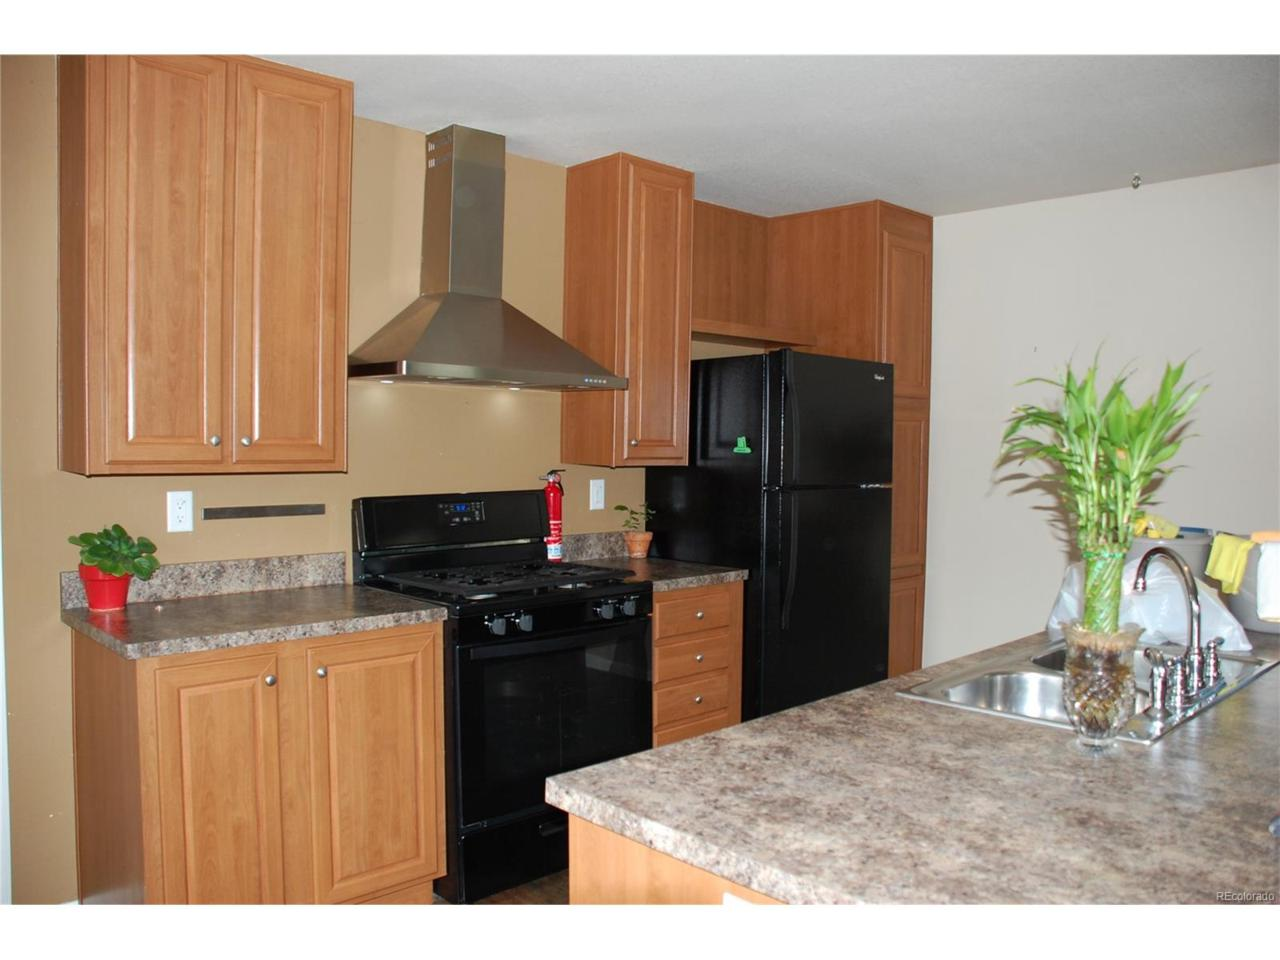 860 W 132rd Avenue #78, Westminster, CO 80234 (MLS #1719220) :: 8z Real Estate